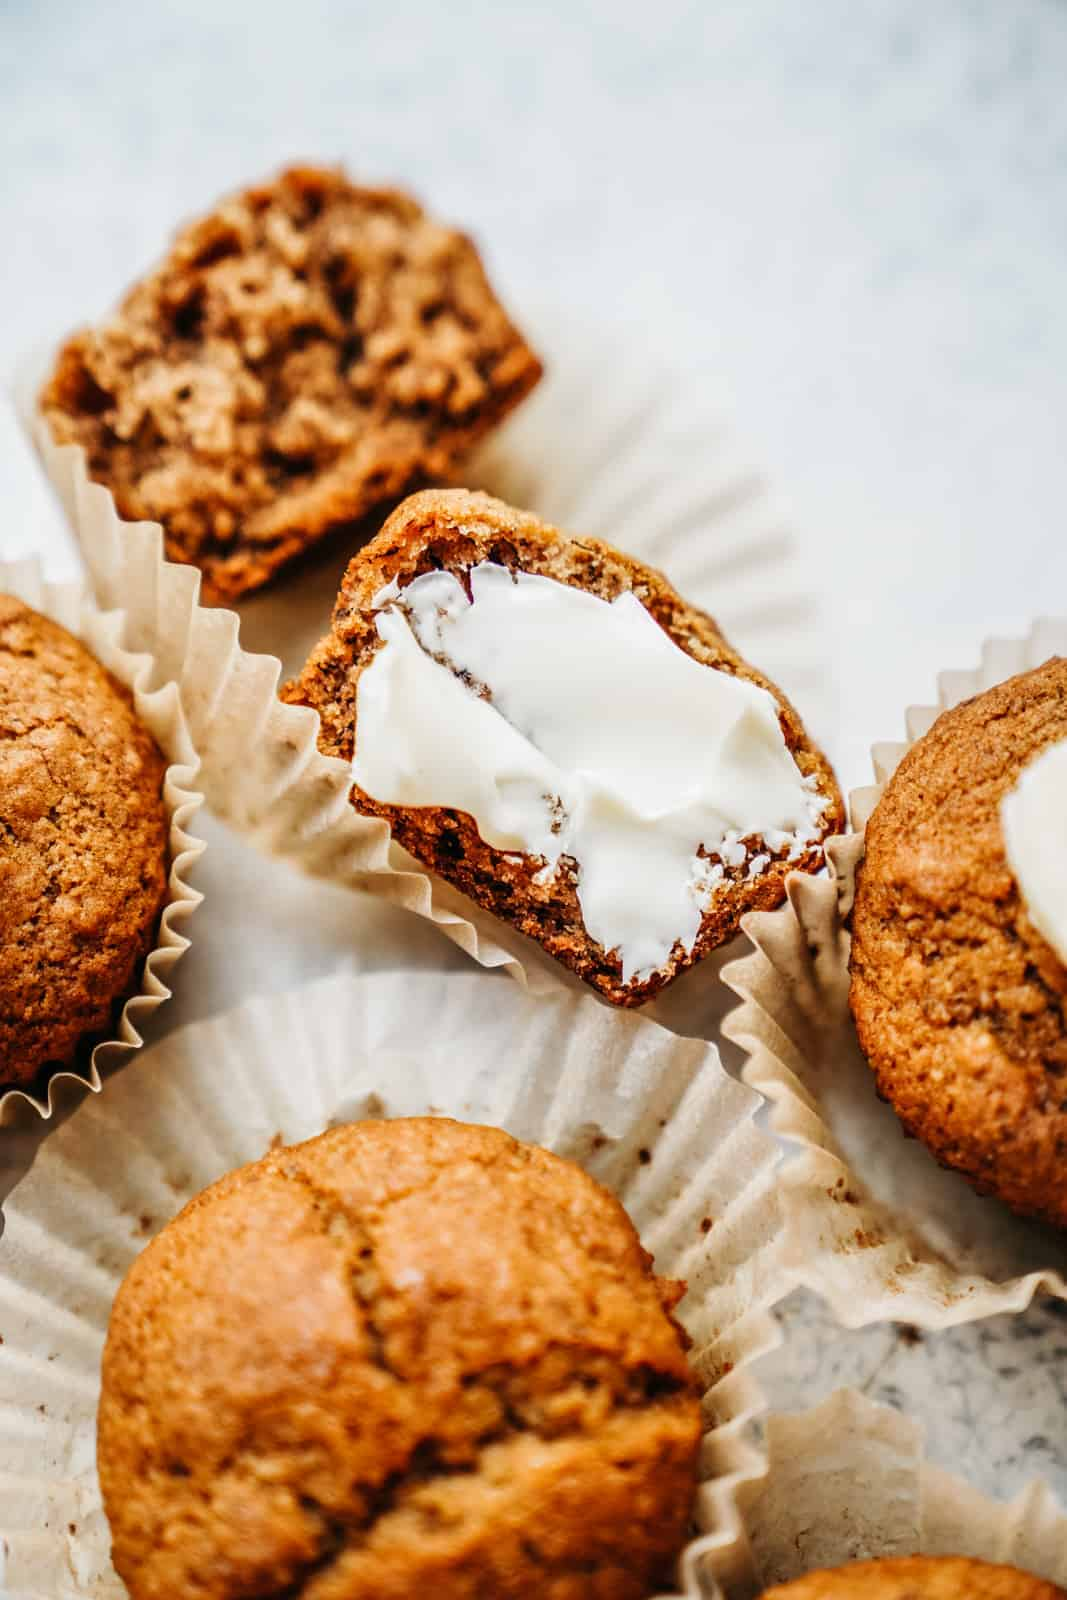 Close-up of Vegan Banana Muffins with vegan butter smeared on a cut muffin.